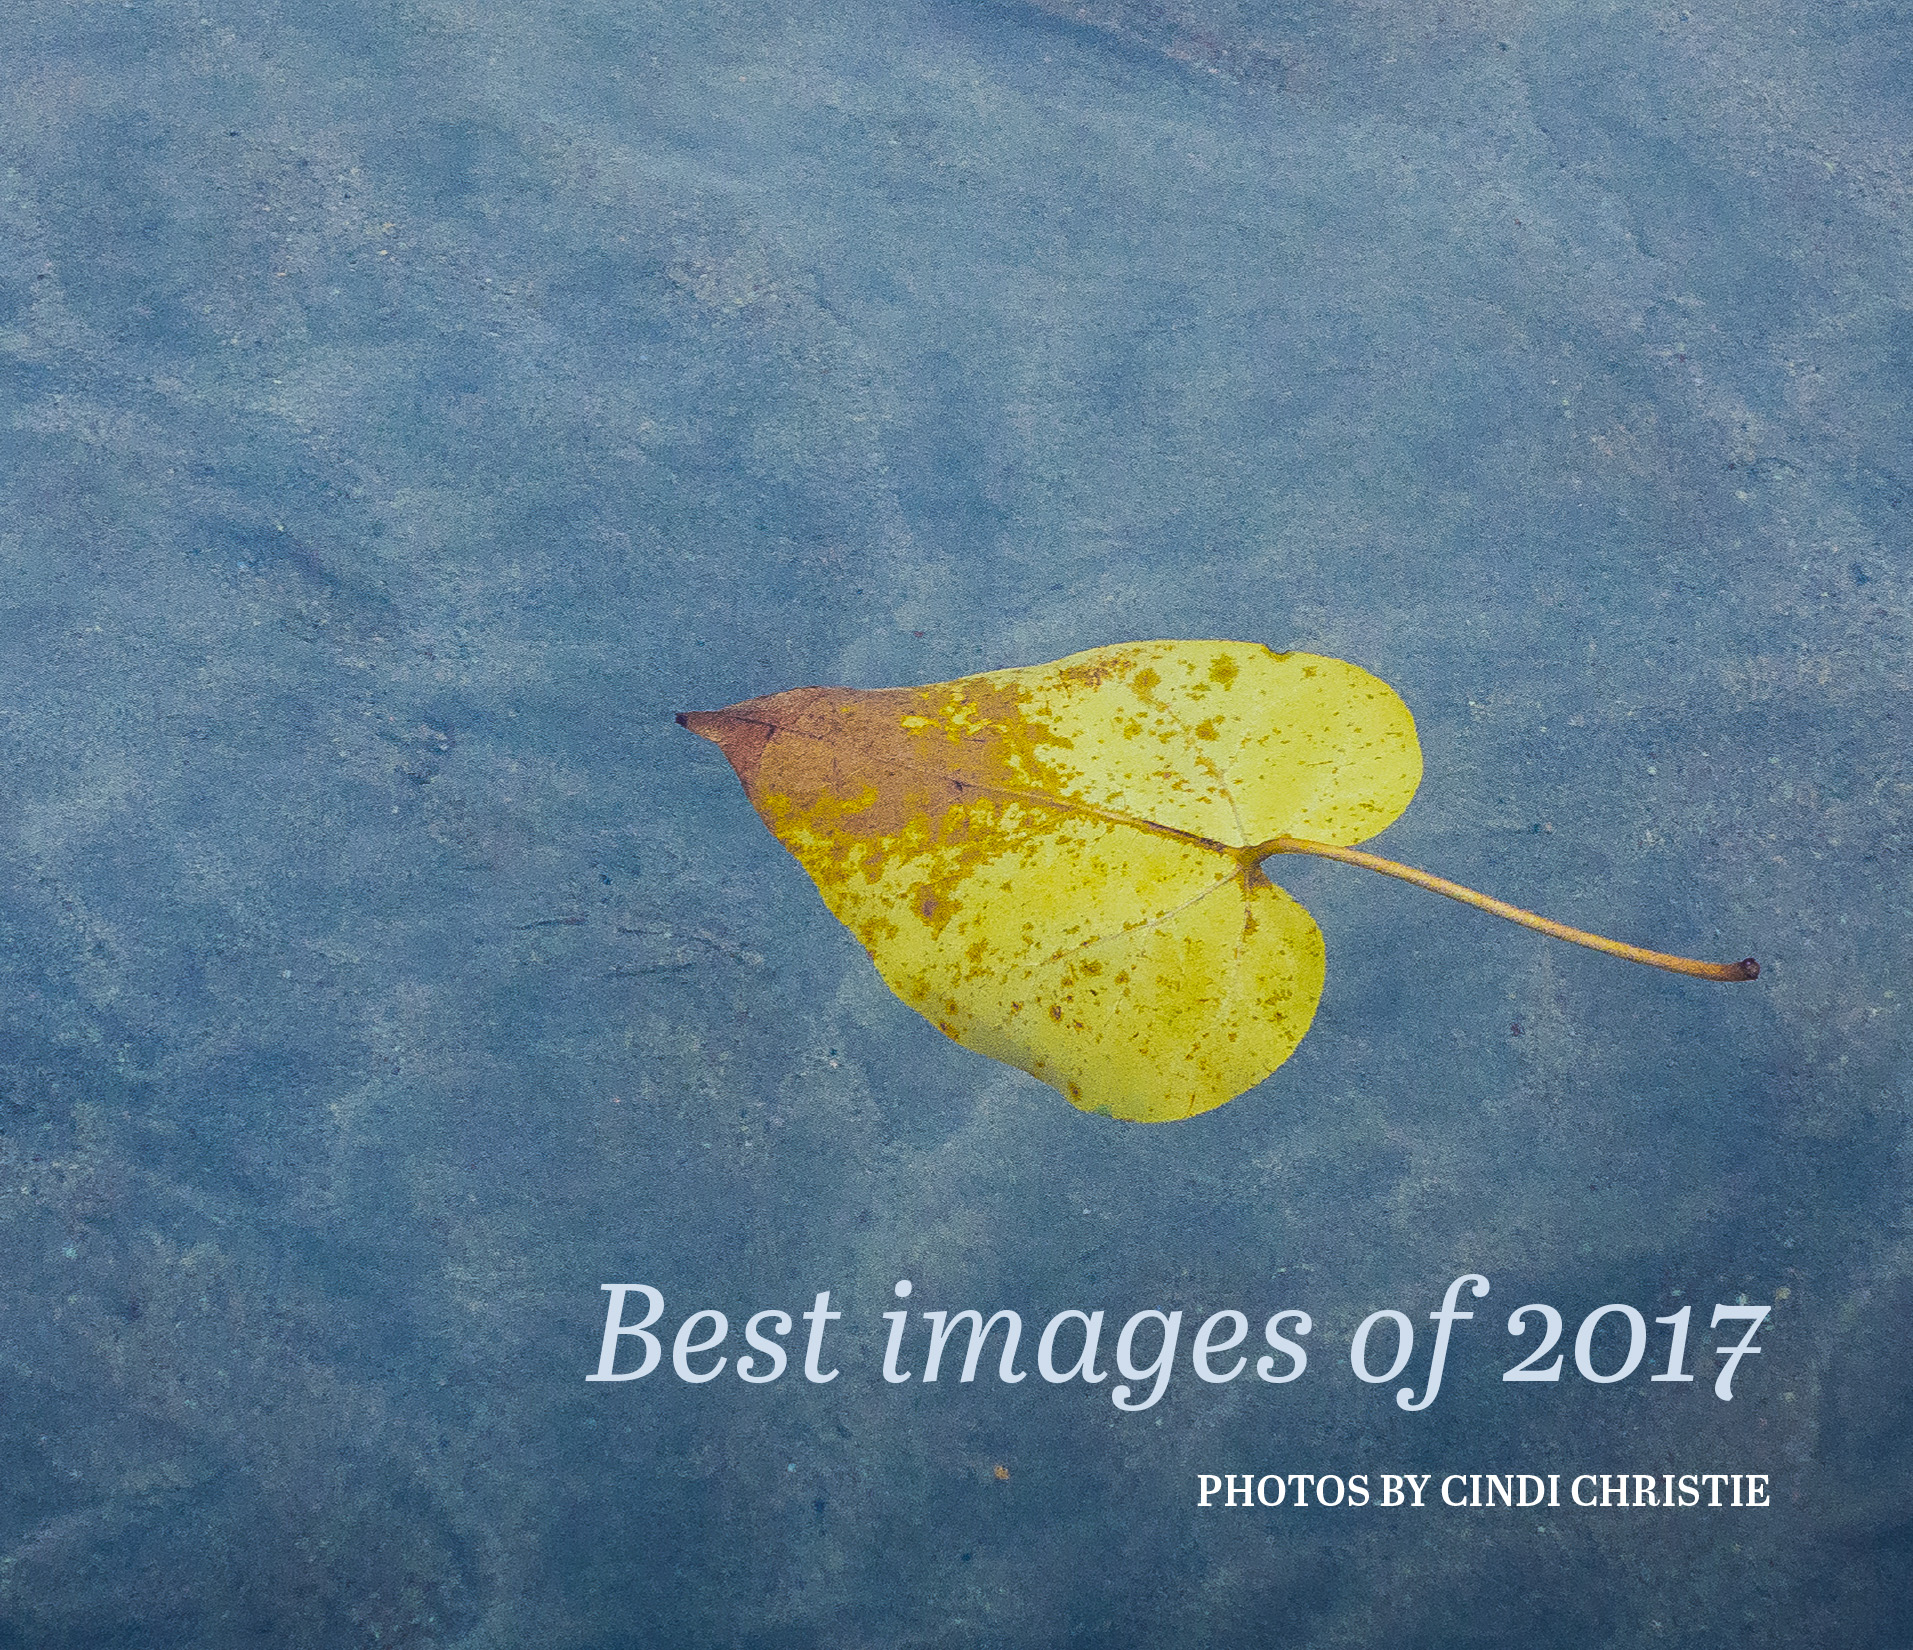 Click here to launch the Best Images of 2017 PDF